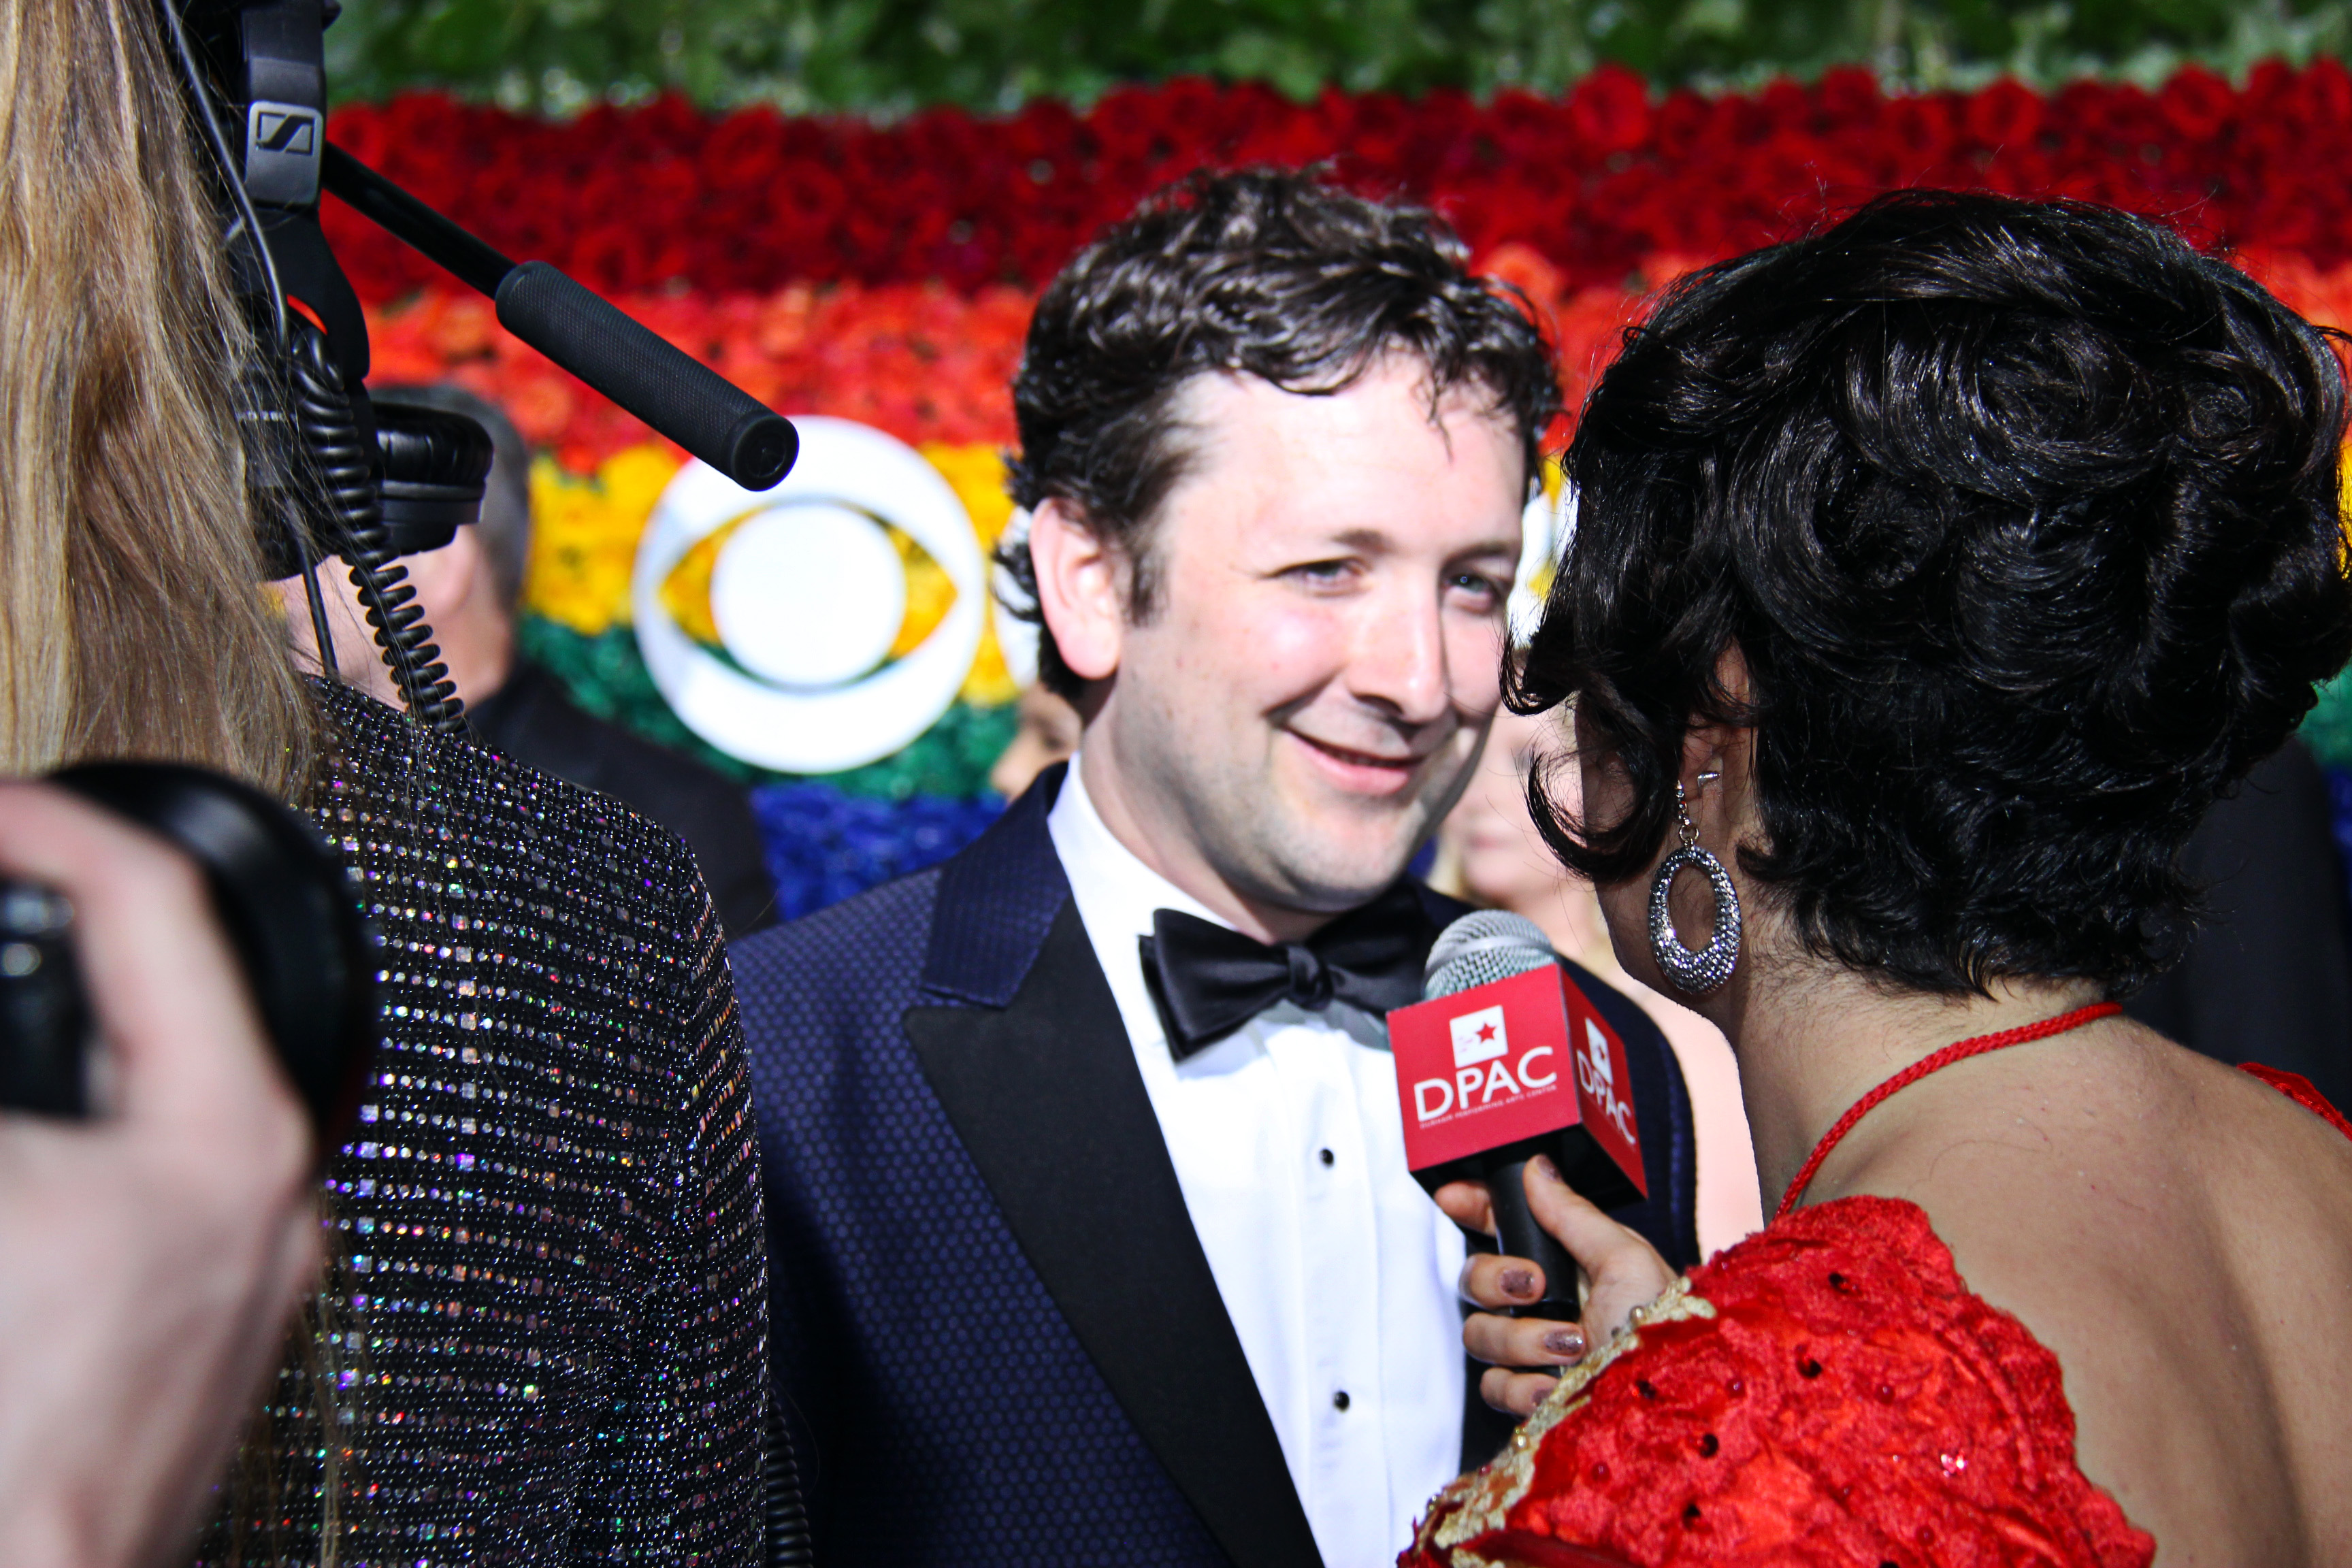 Bradley King from <i>Hadestown</i> on the red carpet. Photo by Broadway Direct.